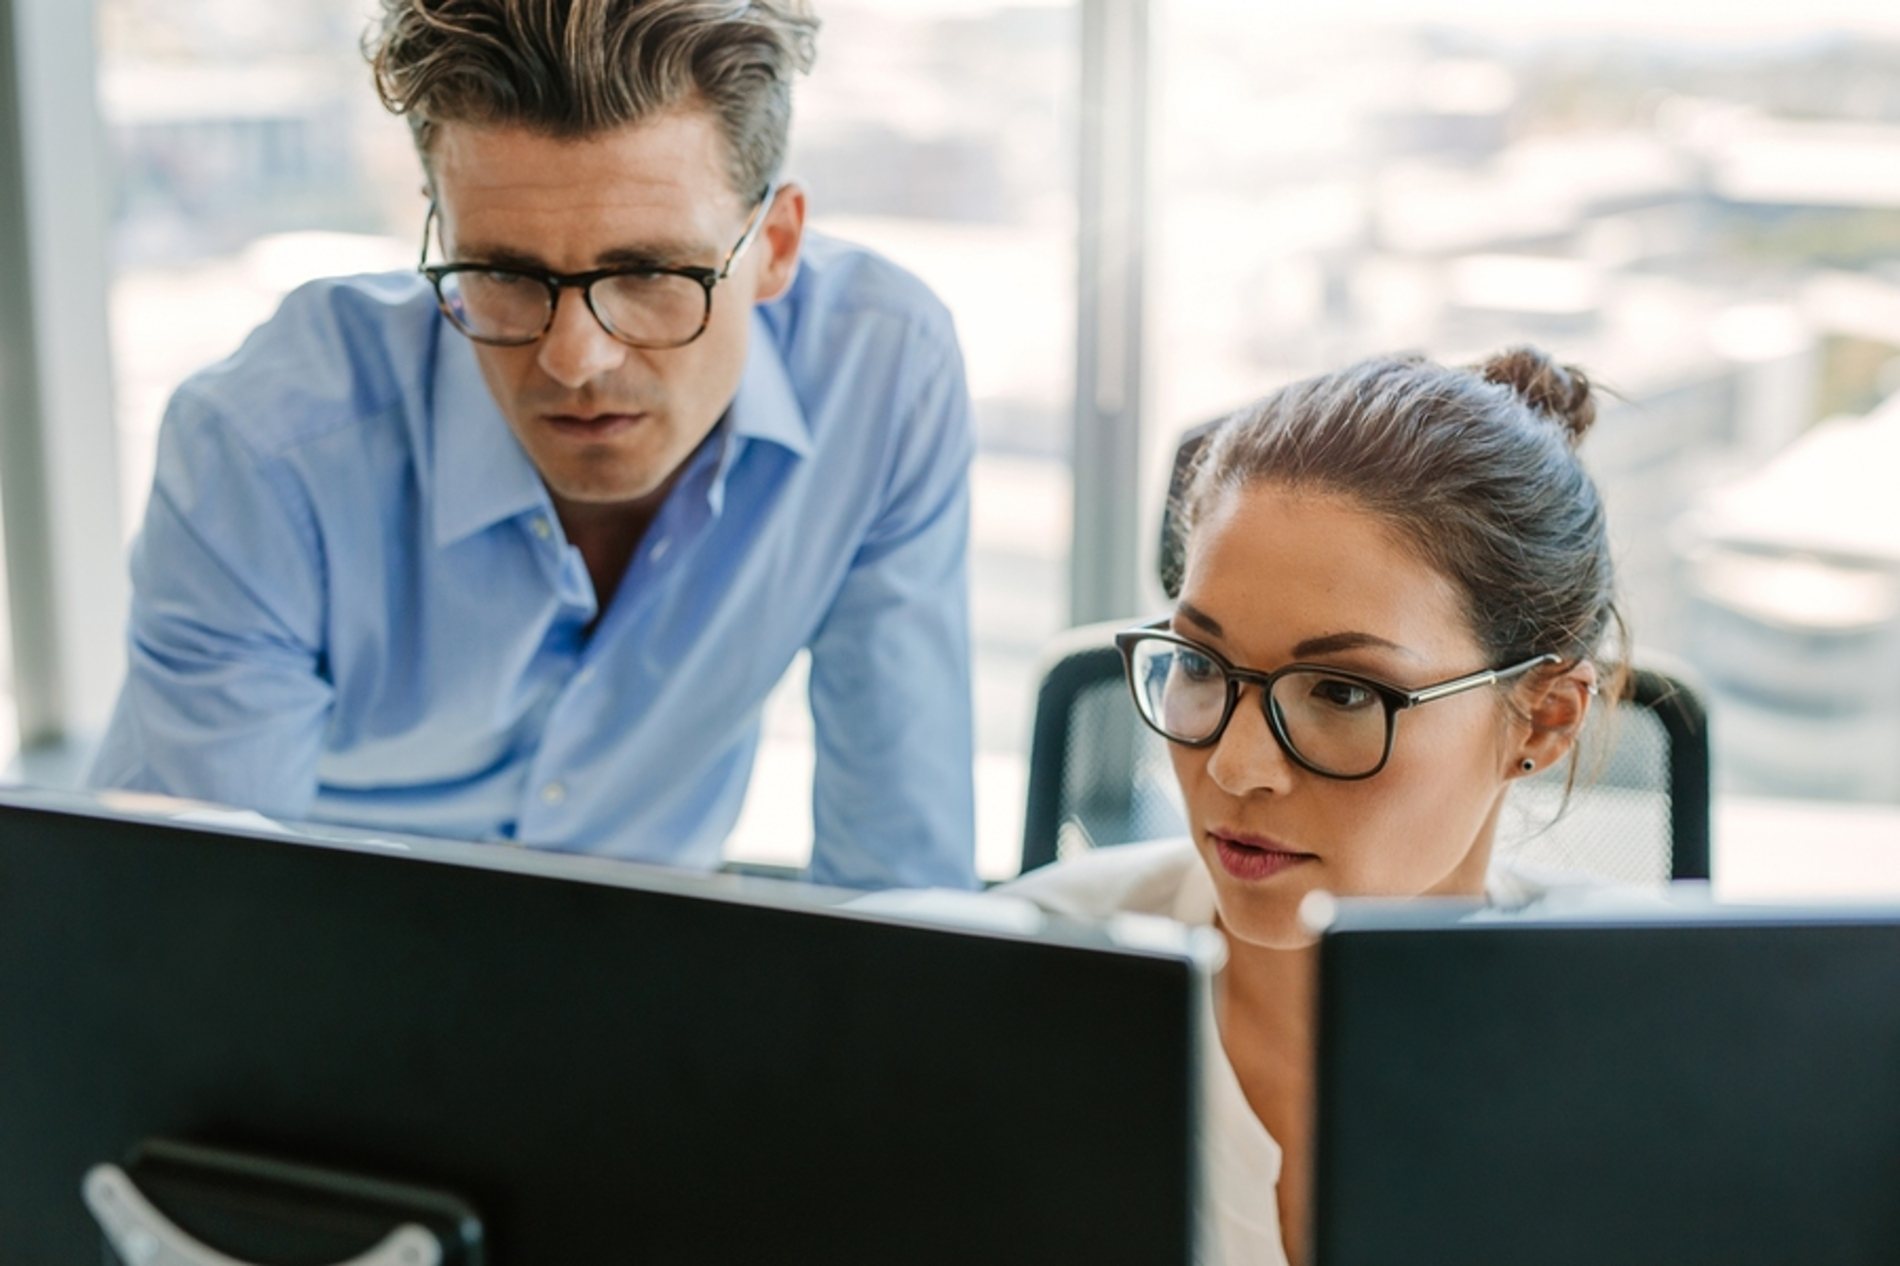 Two coworkers looking at computer monitors together.